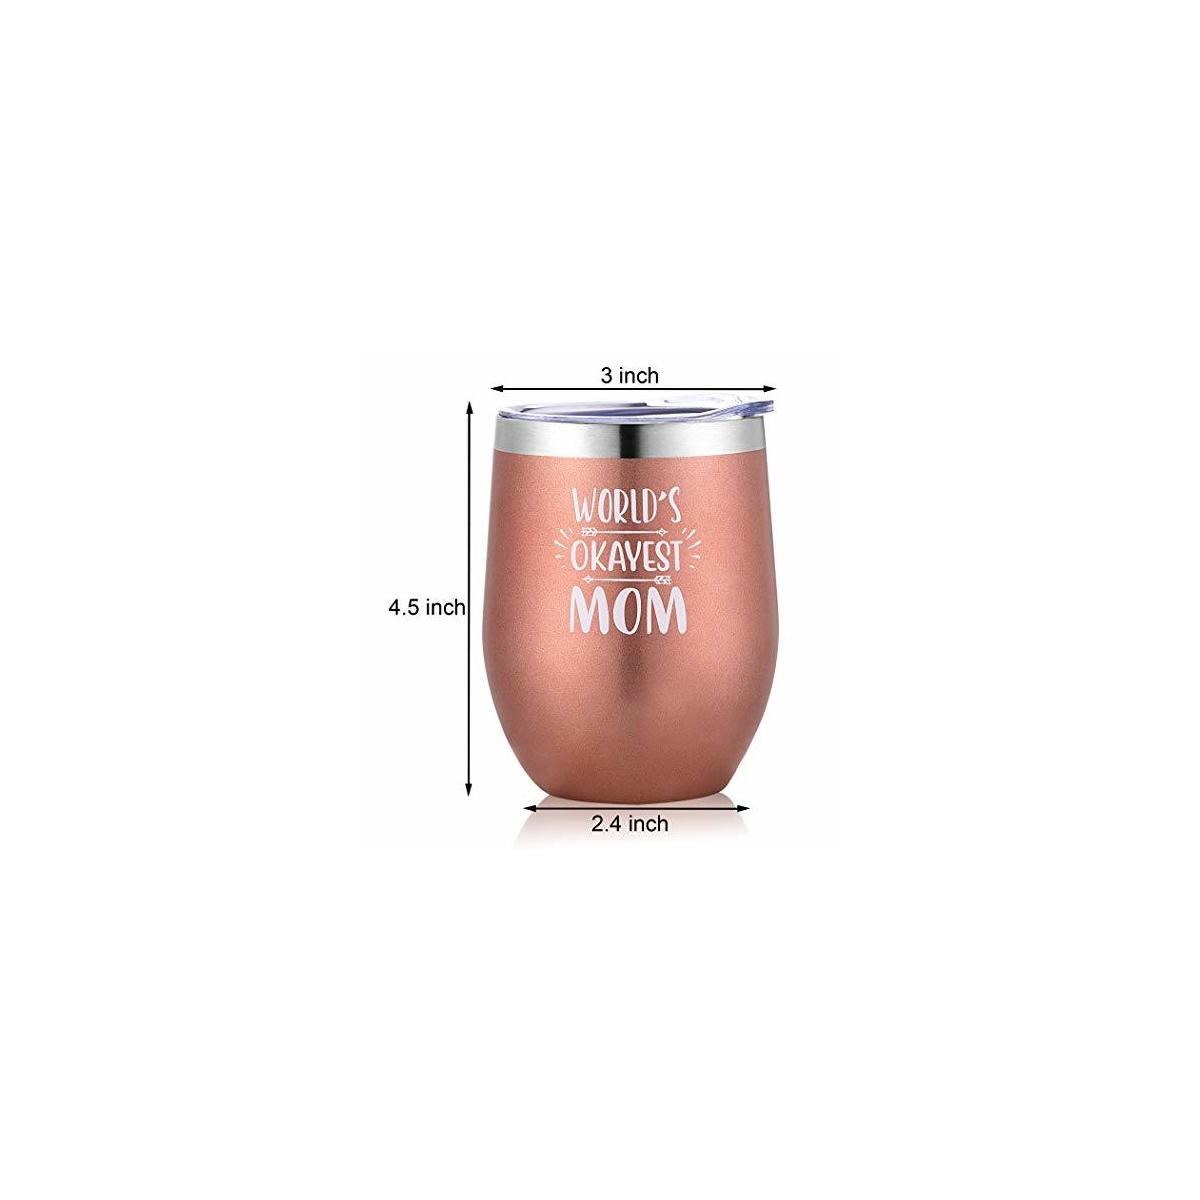 Valentines Day Gifts for Mom, Wife - Funny Mom Gifts from Daughter, Son - Best Mom Birthday Gifts Ideas for Mom Friend, New Mom, Pregnant Mom, Mom to be, Her - Cute Coffee Cup Travel Mug Tumbler